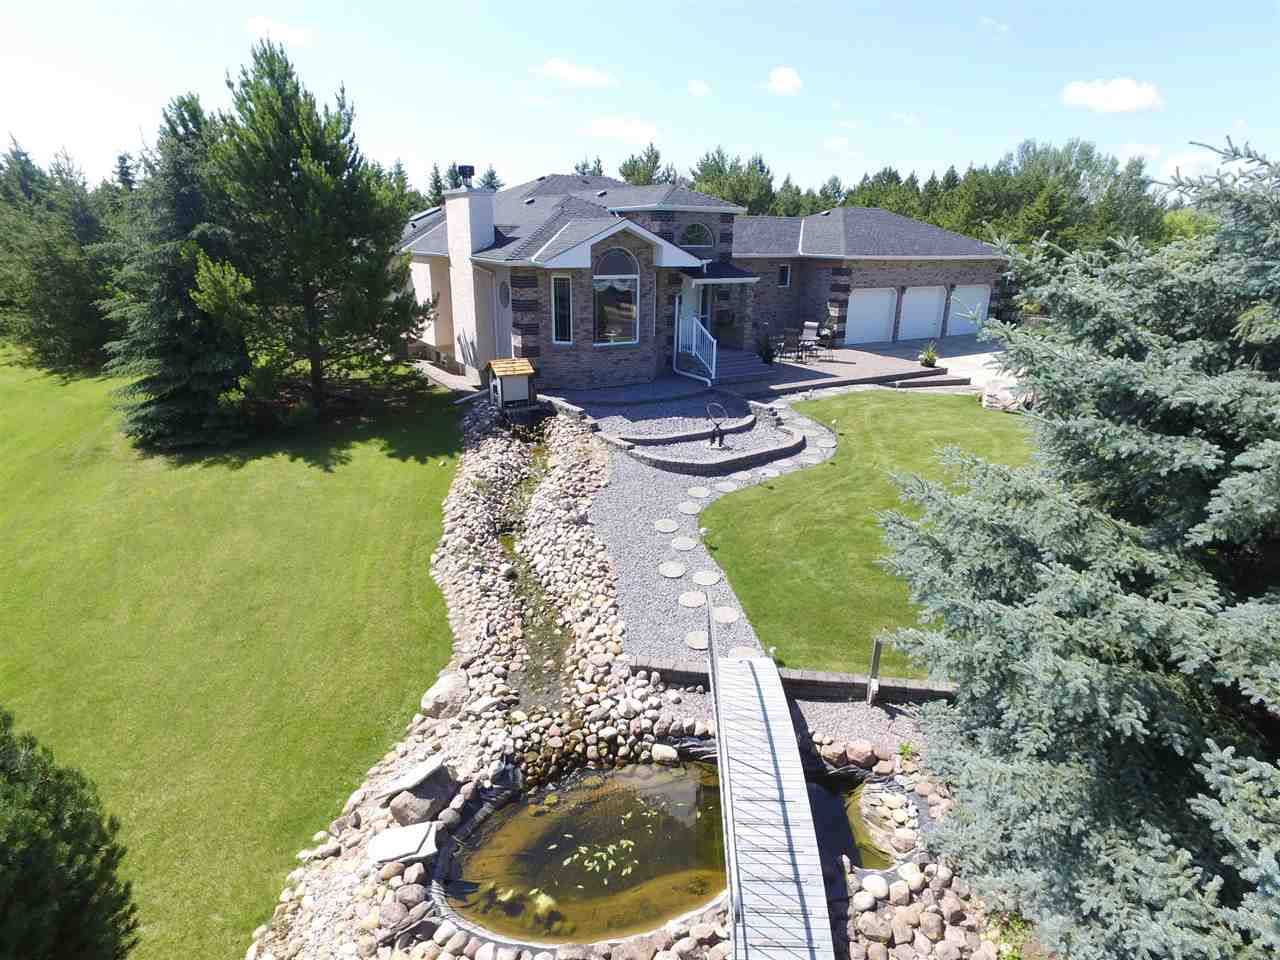 Main Photo: 3-51422 RGE RD 261: Rural Parkland County House for sale : MLS®# E4152896